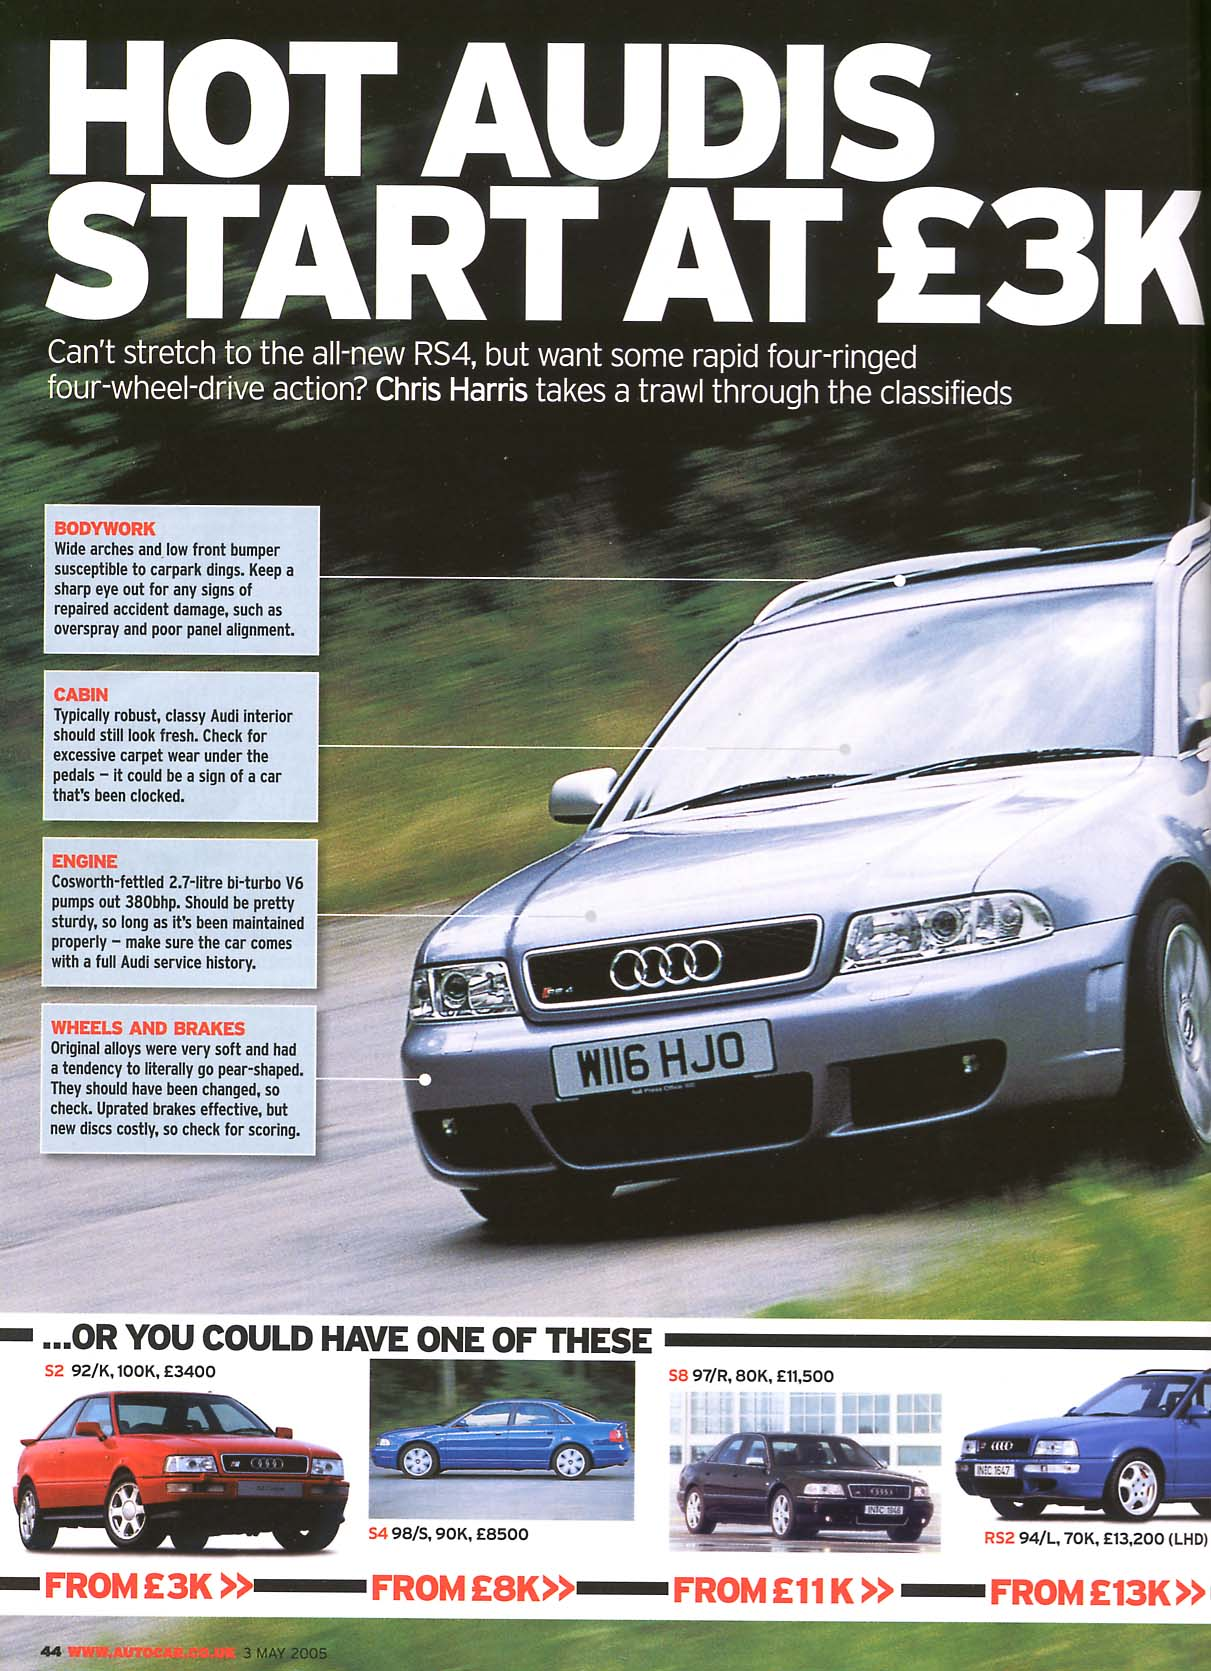 Last week's Autocar article on buying a R/S Audi? - RS246